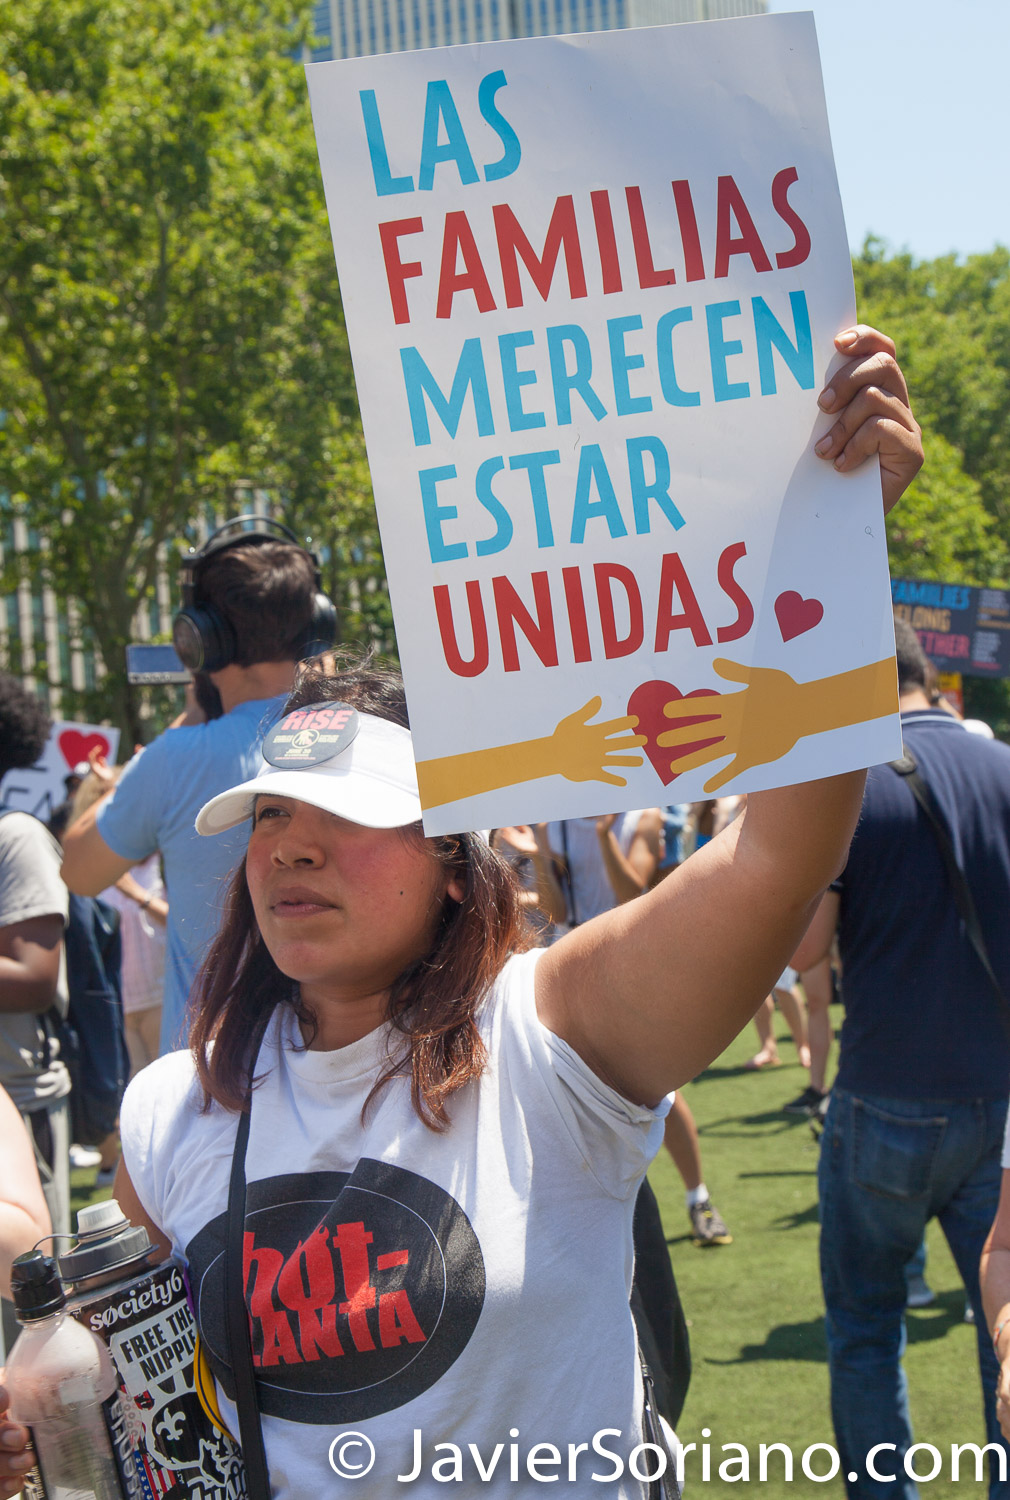 "6/30/2018. March: ""Families Belong Together."" People at Cadman Plaza. People's protectors marched from Foley Square in Manhattan to Cadman Plaza in Brooklyn. The sign says: ""Las familias merecen estar unidas."" Photo by Javier Soriano/www.JavierSoriano.com"